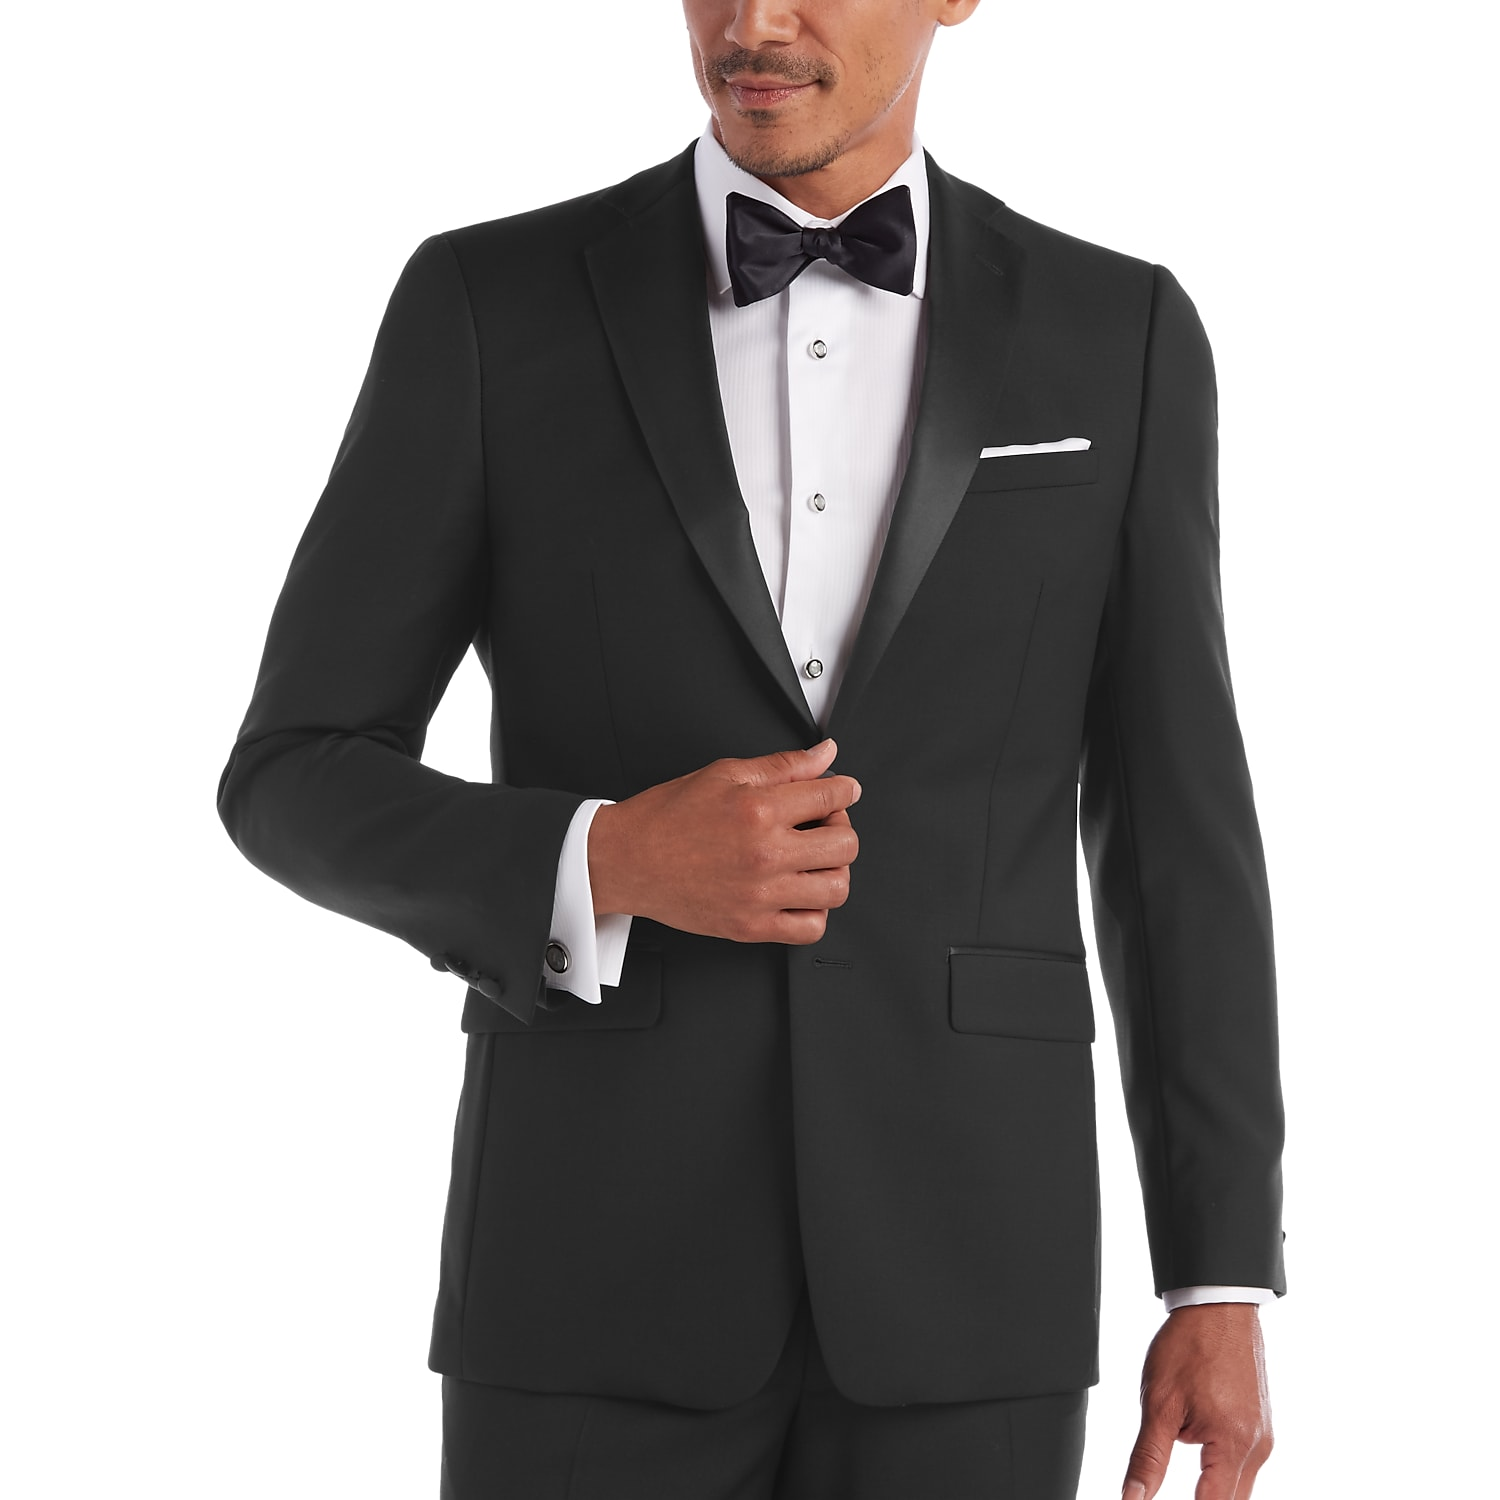 Free shipping at the Tuxedo Shop at loadingbassqz.cf Shop tuxedos, tuxedo shirts, ties, shoes for weddings and formal occassions. Totally free shipping and returns.